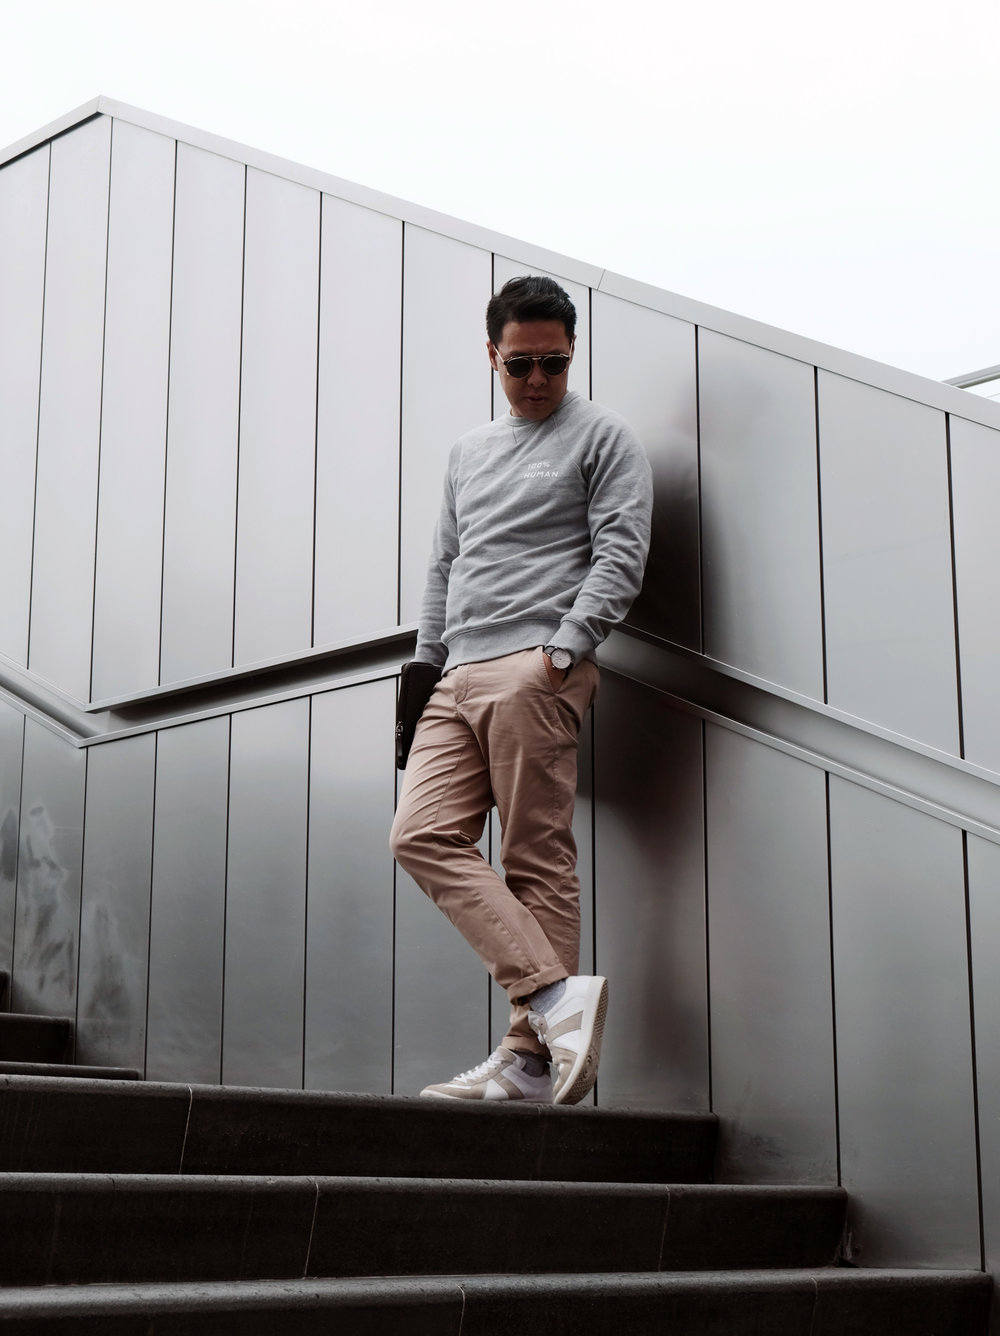 Classic French Terry Crew sweatshirt & Midweight Athletic Chino.